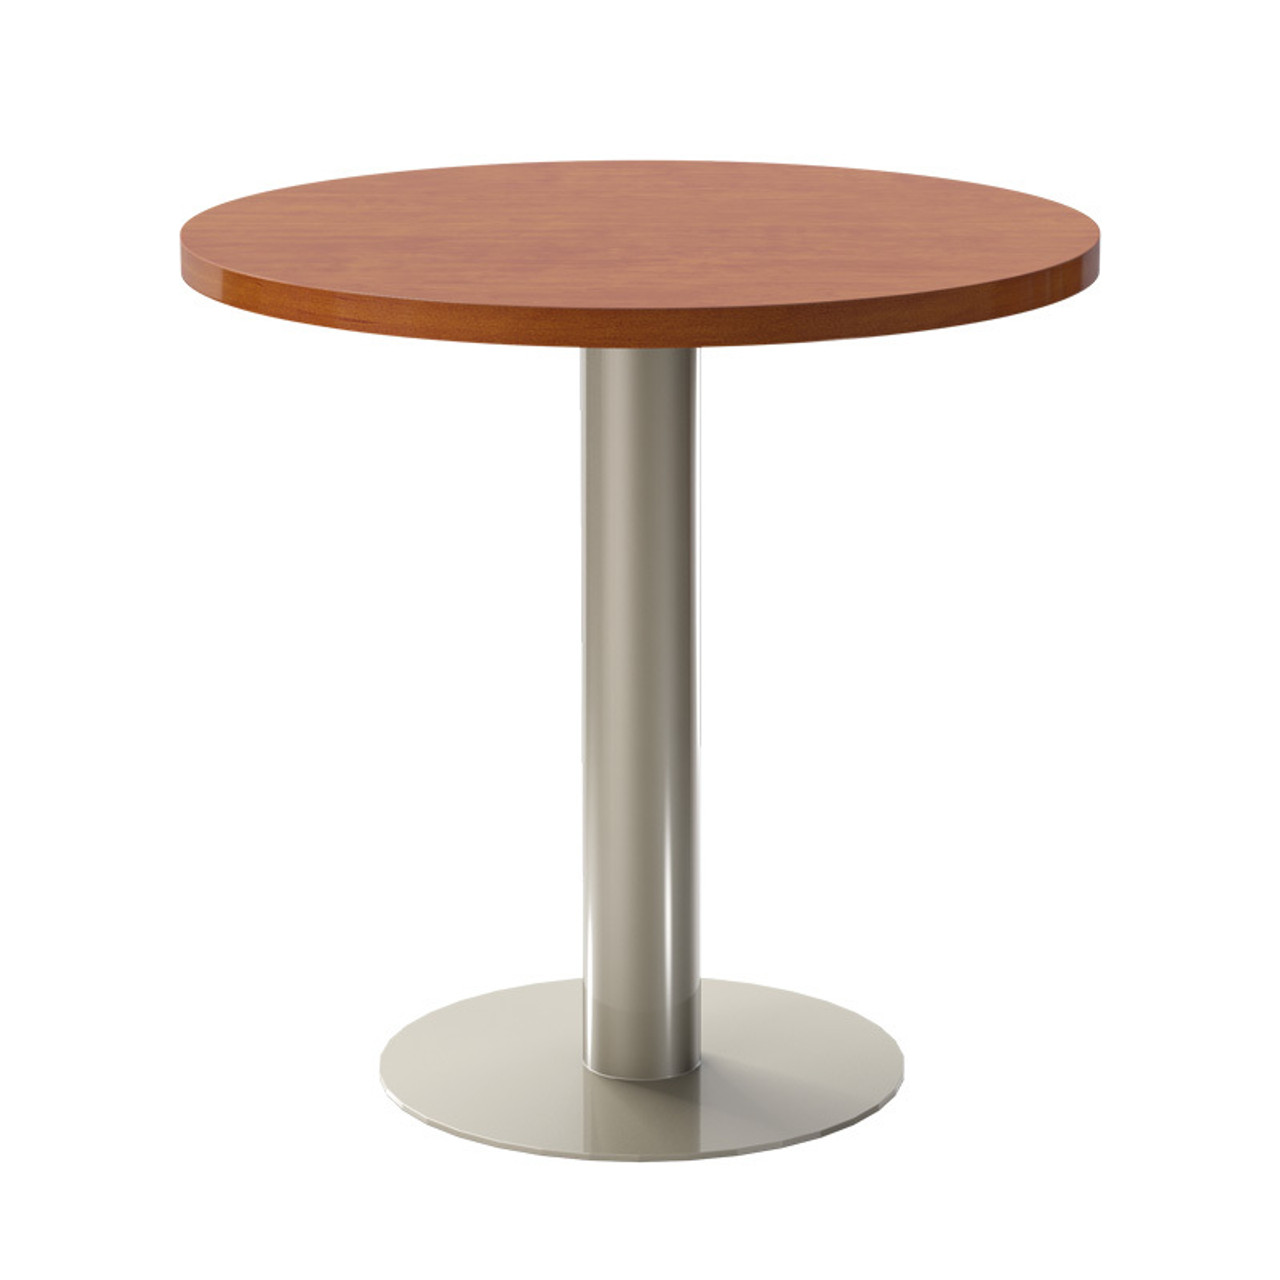 "Bar height, 18"" diameter pedestal base version shown here with additional wooden top."